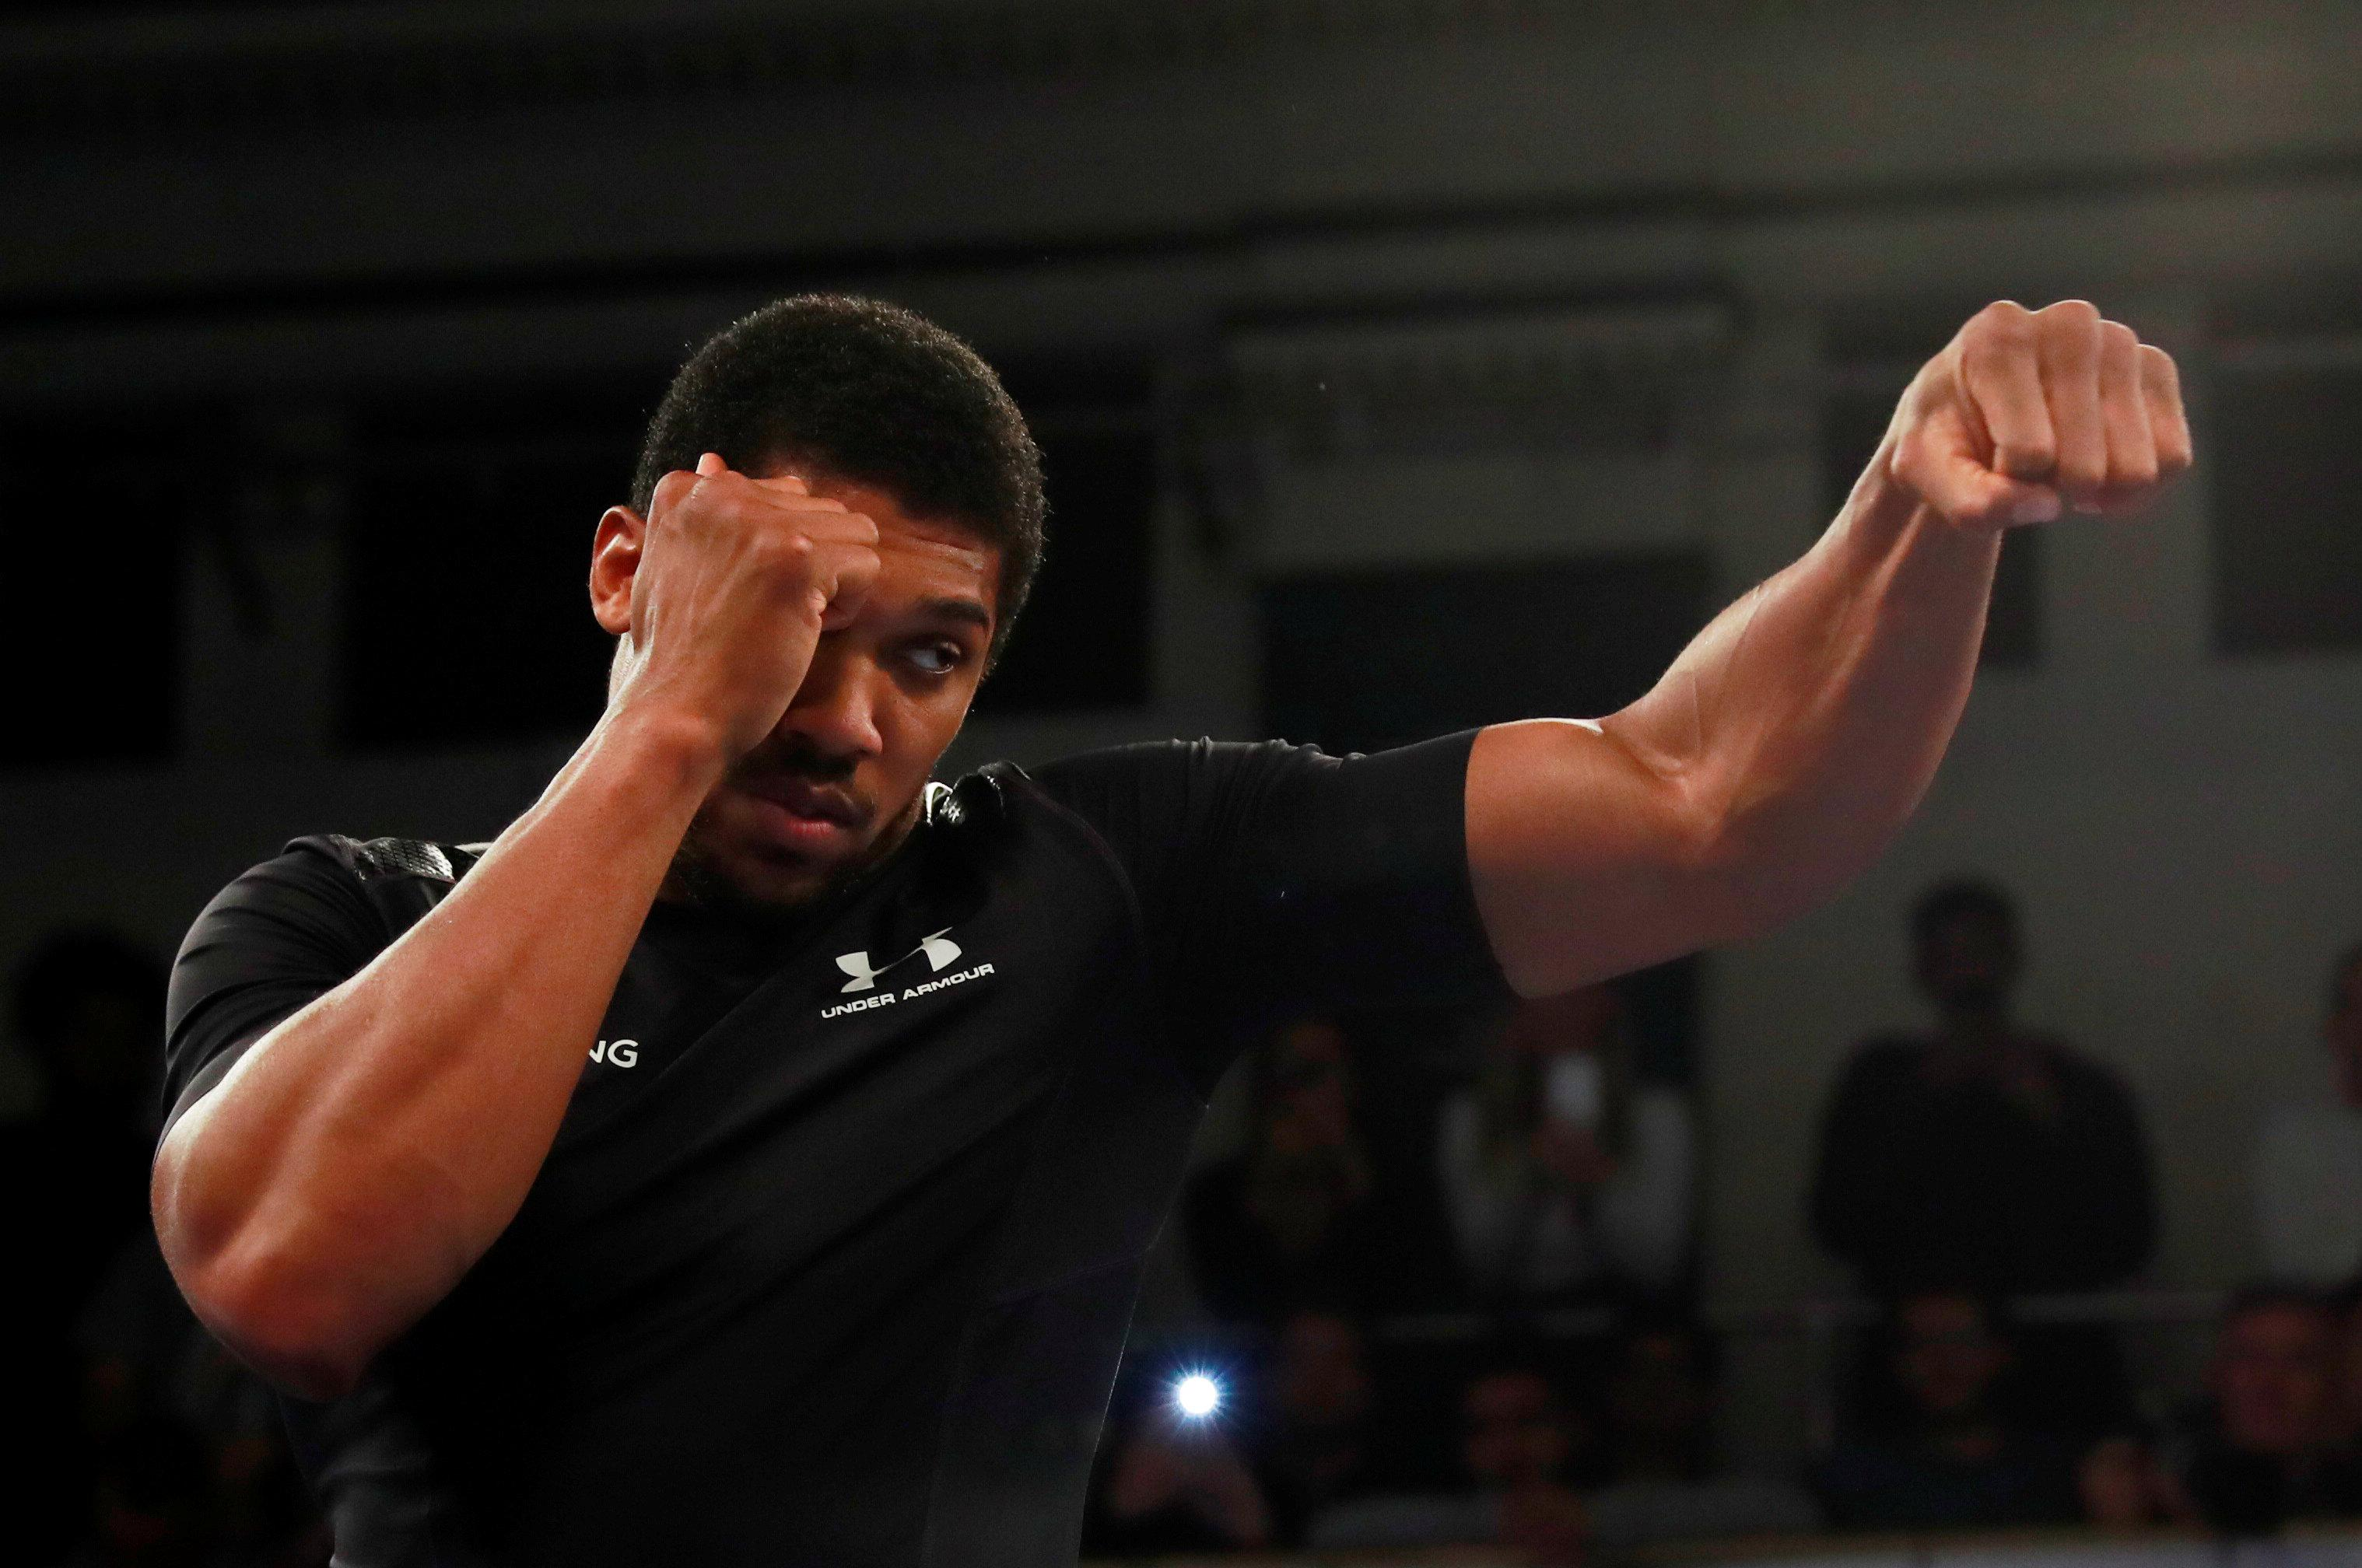 Unified world champion Anthony Joshua out to continue his unbeaten streak as he does some shadow for York Hall crowd at yesterdays public workout